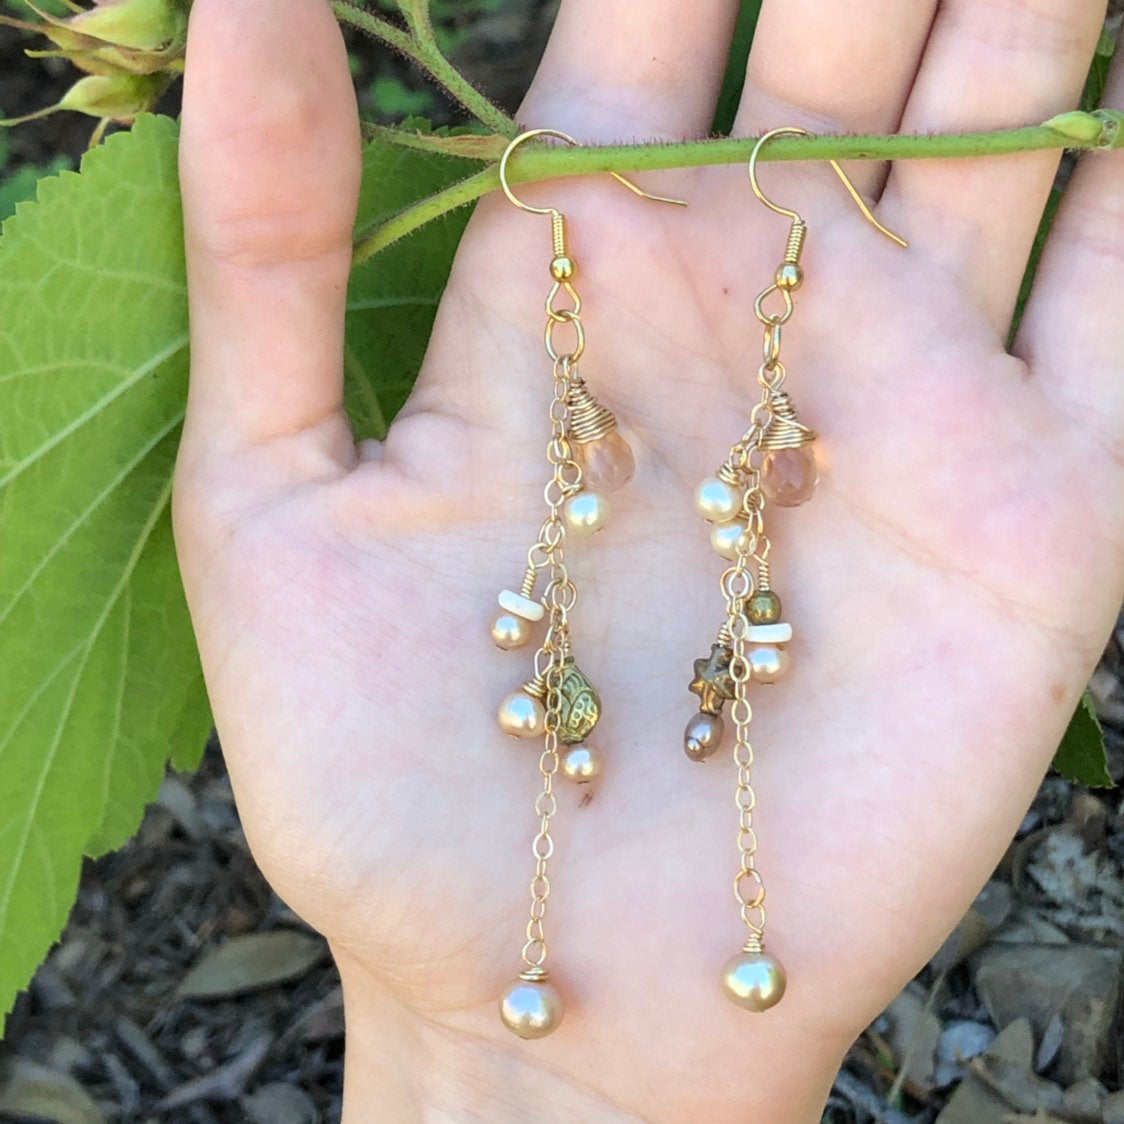 Pearl Dangle Earrings / 24k Gold Filled Chain / Freshwater Pearls / 14k Gold Filled Wire Wrapped / Dangle Earrings / Champagne Sapphire